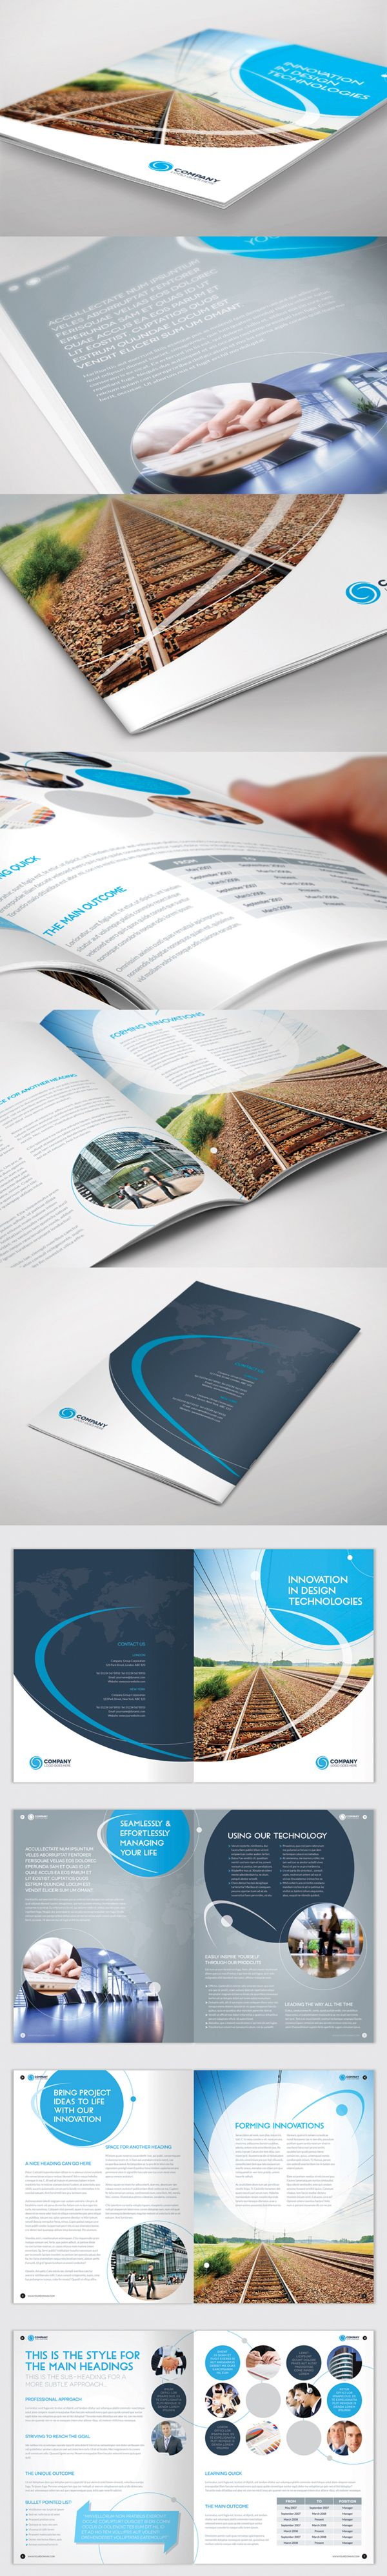 Brochure Template - InDesign 8 Page Layout 01 by BoxedCreative , via Behance  #print #catalog #catalogue #book #design #layout #dtp #printed